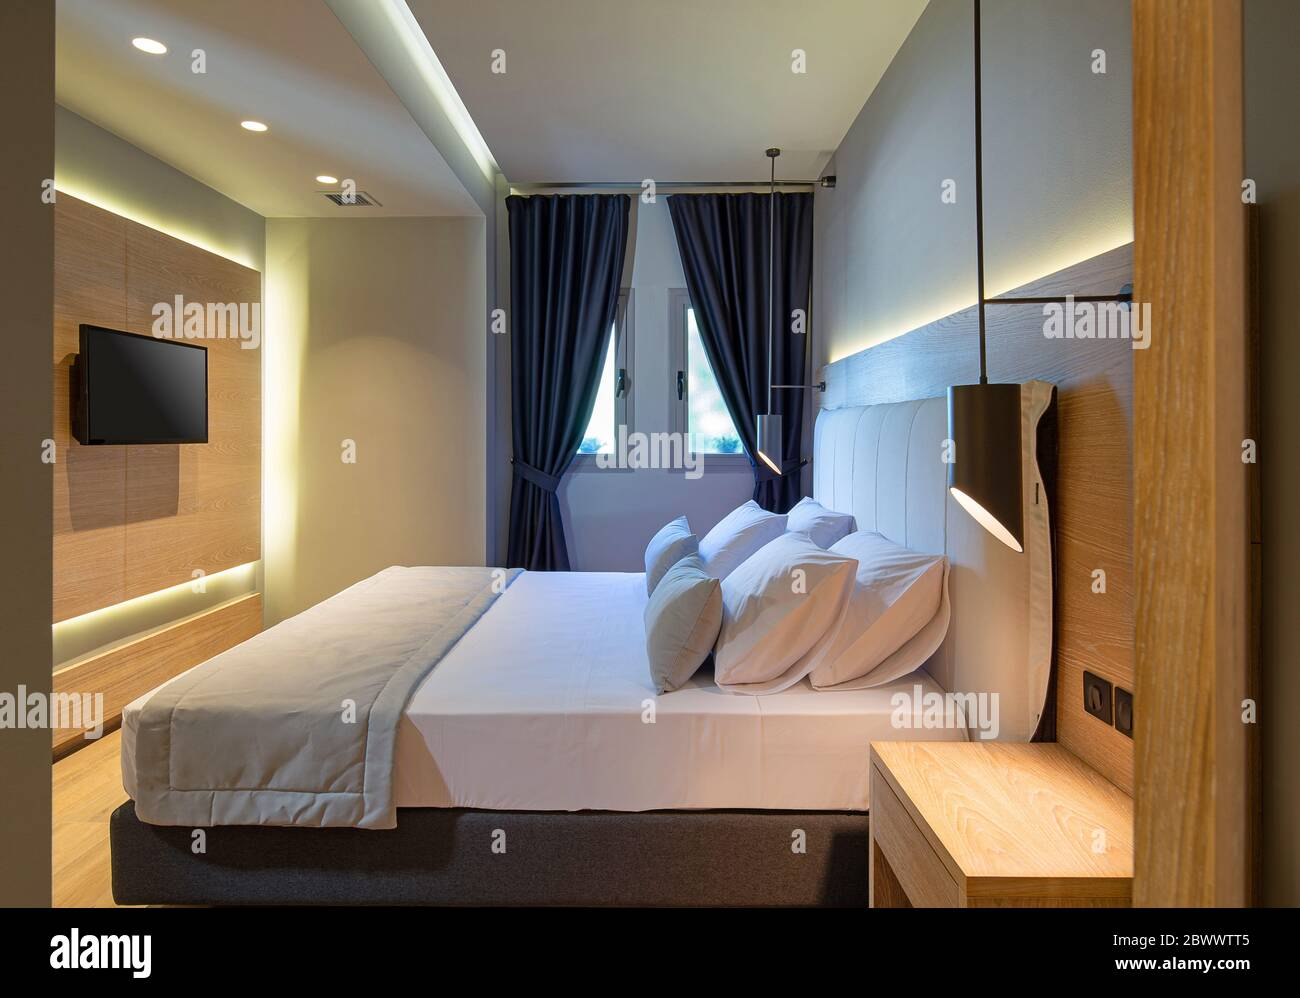 https www alamy com side view of modern bedroom interior with wooden panel flat tv backlight textile headboard stylish contemporary minimalism in hotel apartment room image360142053 html